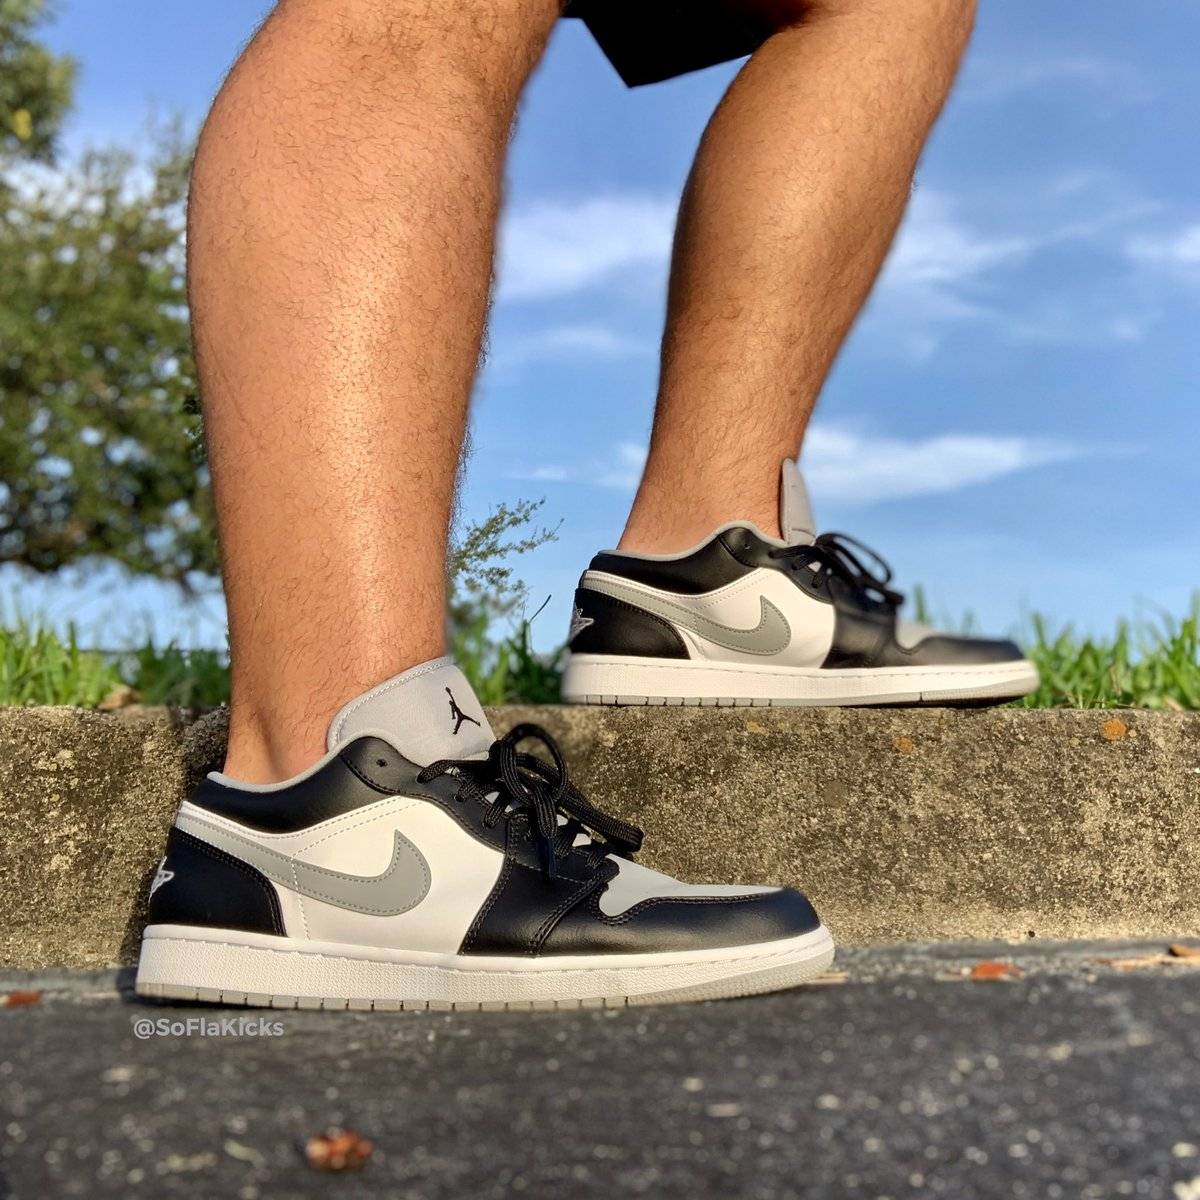 J's on and off the course 🏌🏻 #kotd #yoursneakersaredope #aj1fam https://t.co/xeEpwENrgT